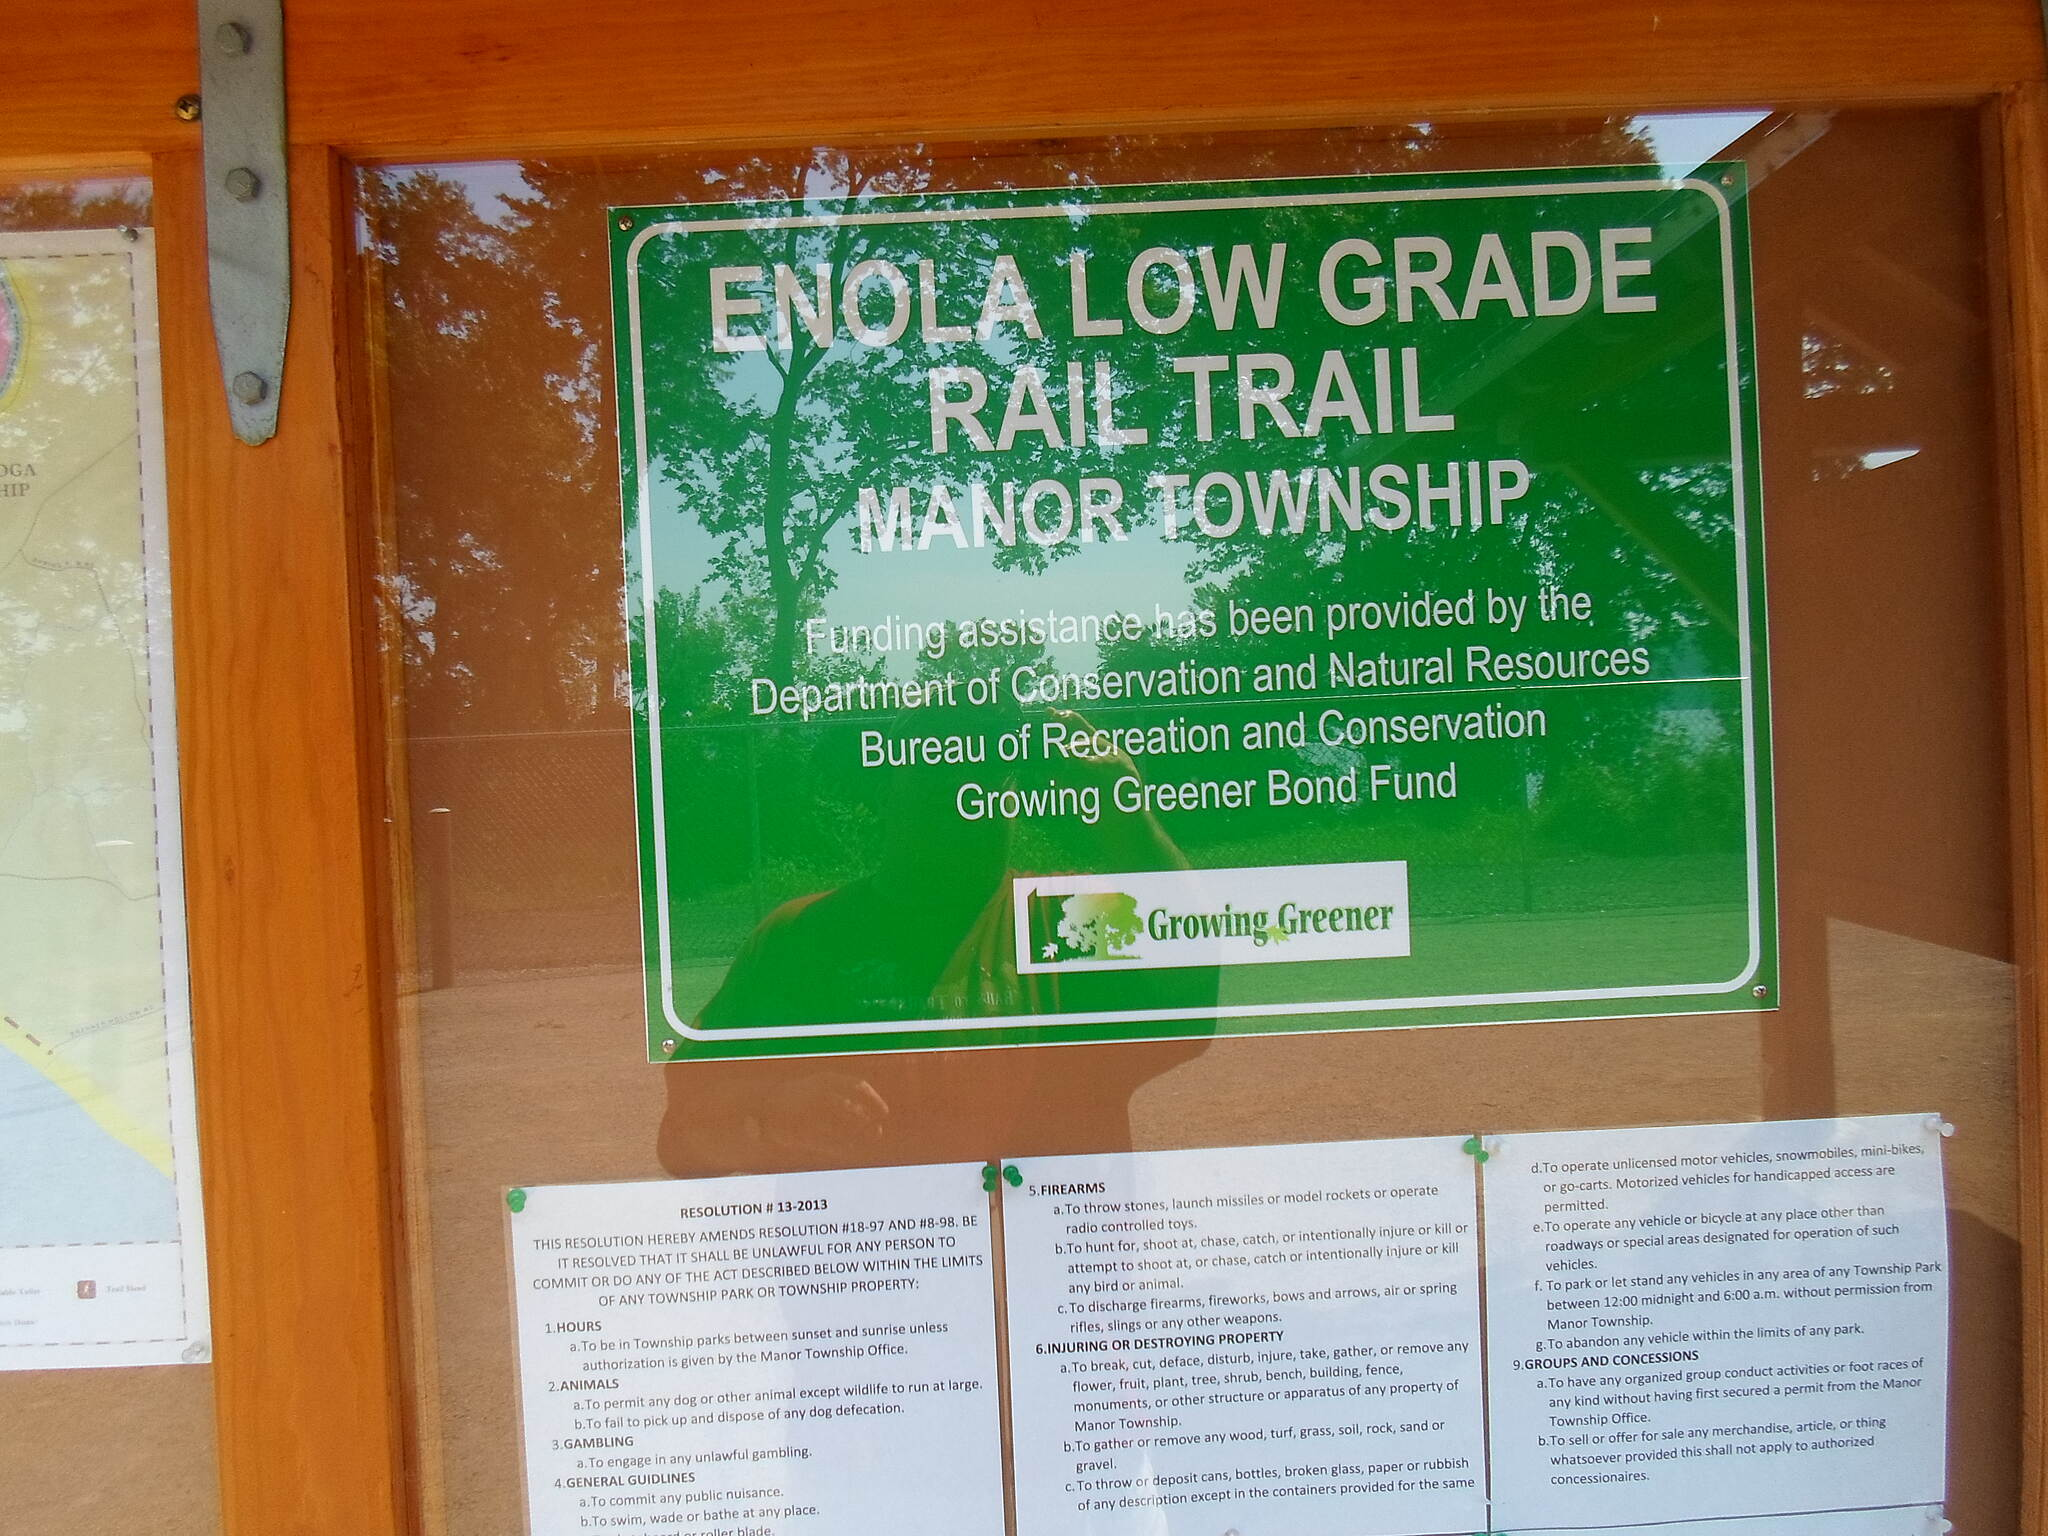 Enola Low Grade Trail Enola Low-Grade Trail Another sign on the kiosk that greets users at the start of the Manor Township portion near Creswell.